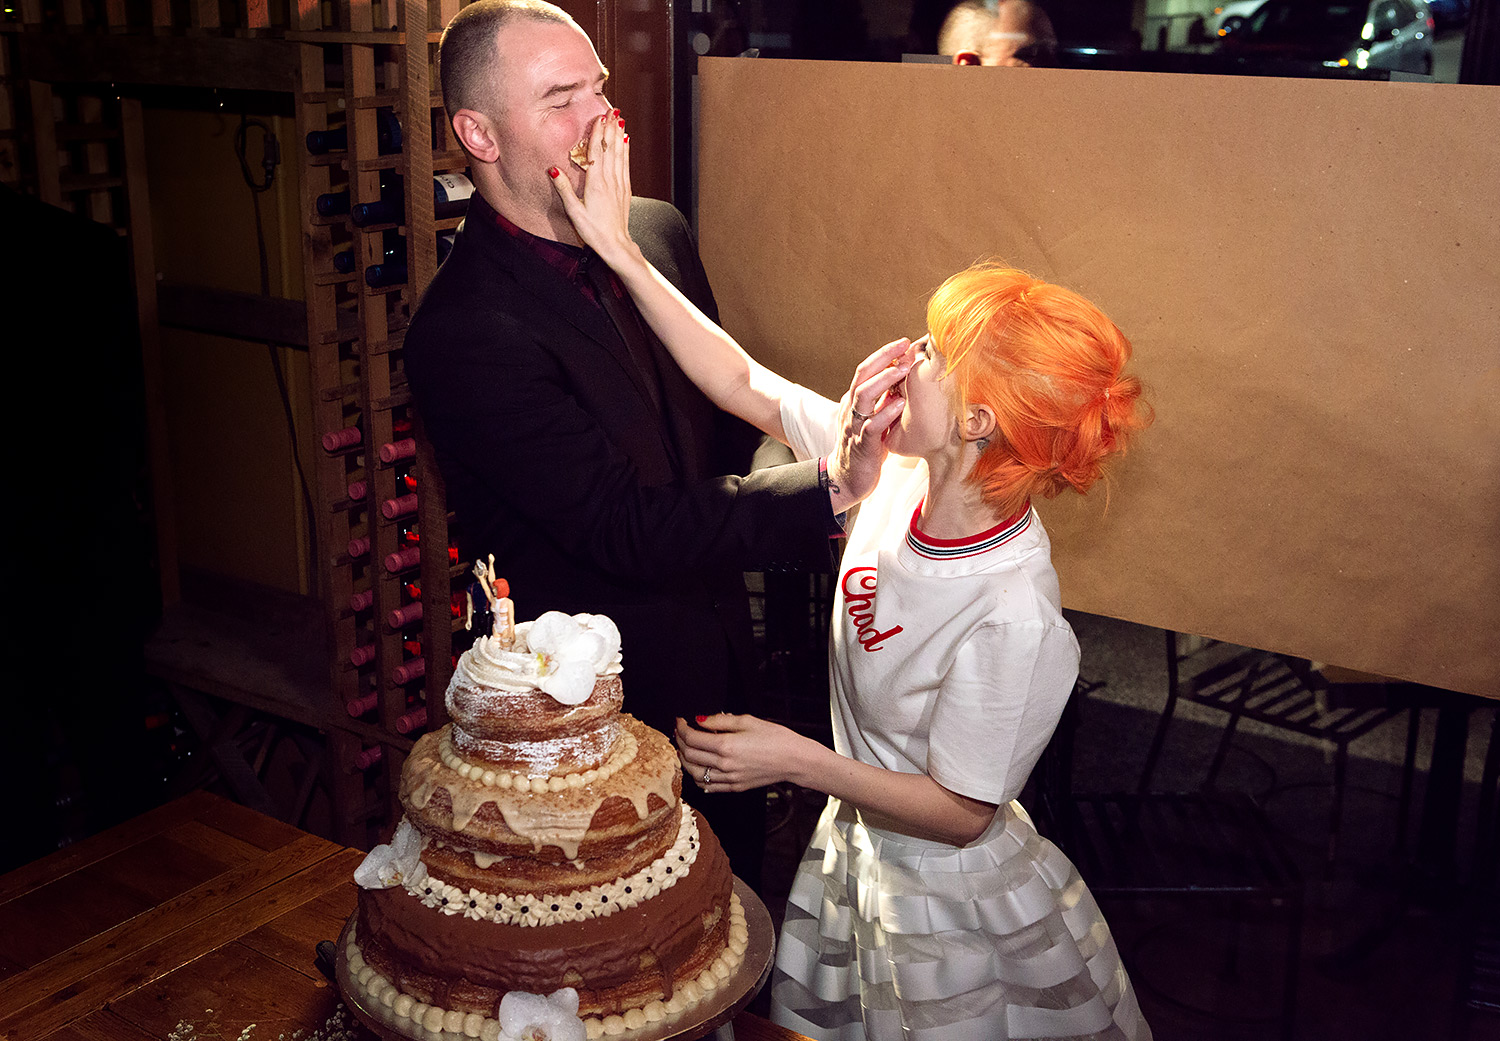 Chad Gilbert and Hayley Williams' wedding cake